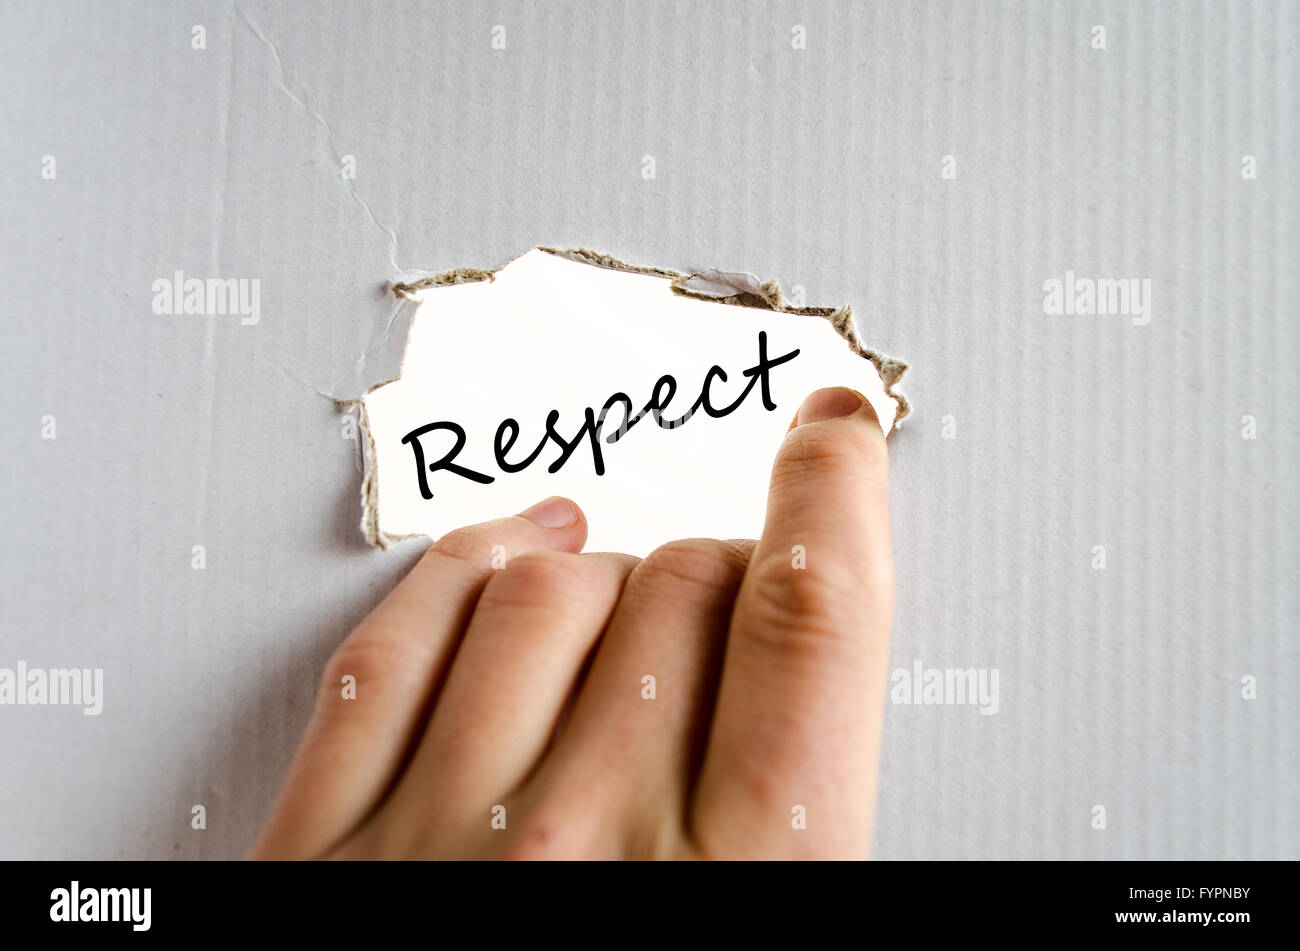 Respect text concept - Stock Image